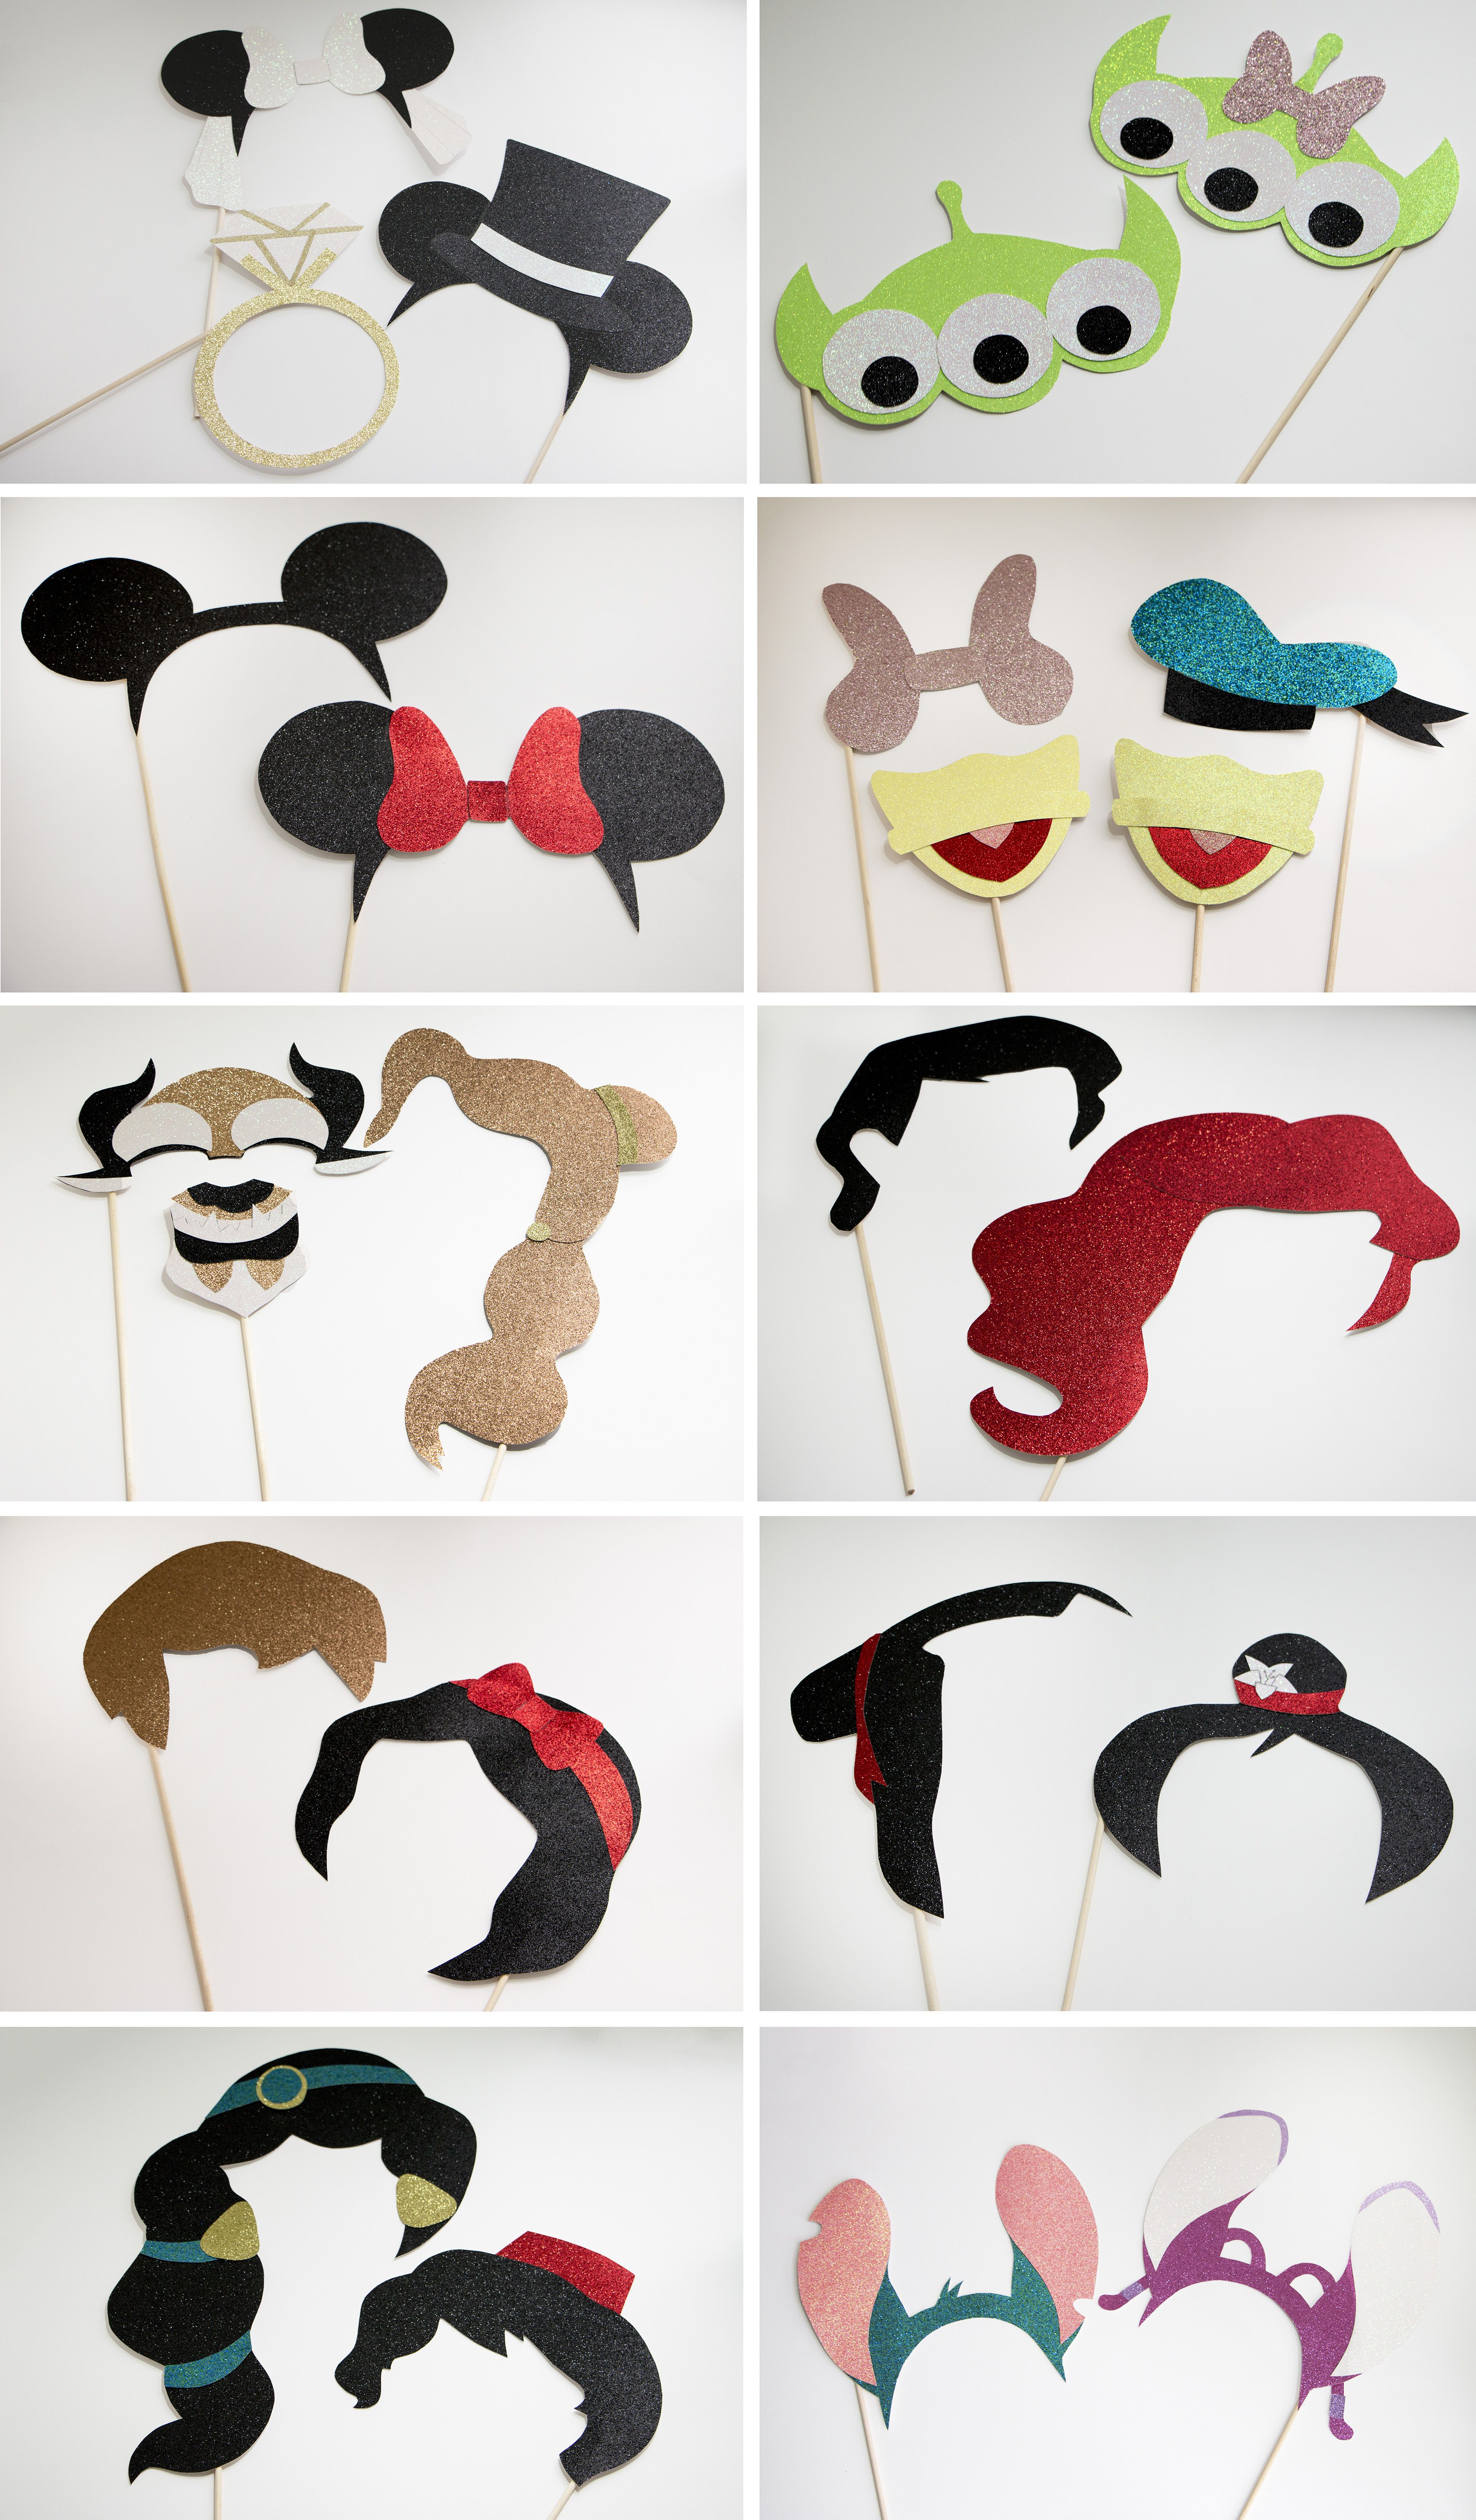 Wedding Ideas Cuteness Materialized By Milkteamochidesigns Disney Themes Themed Party